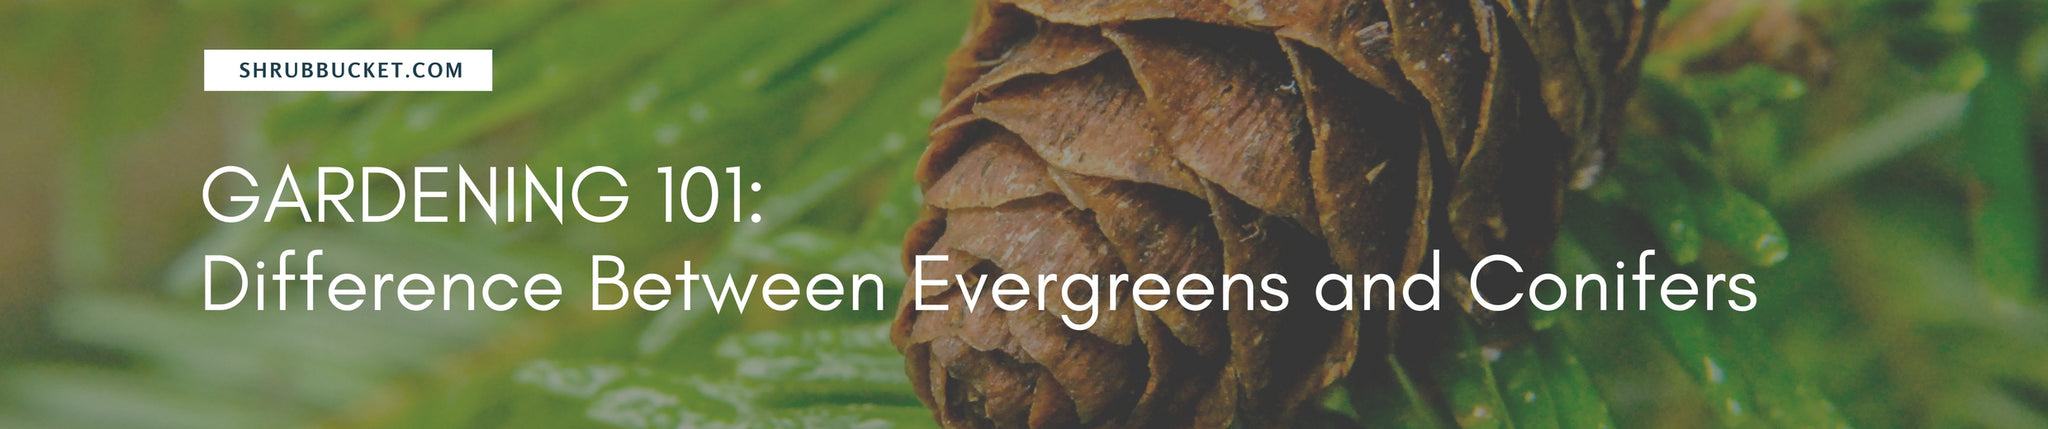 The Difference Between Evergreens and Conifers